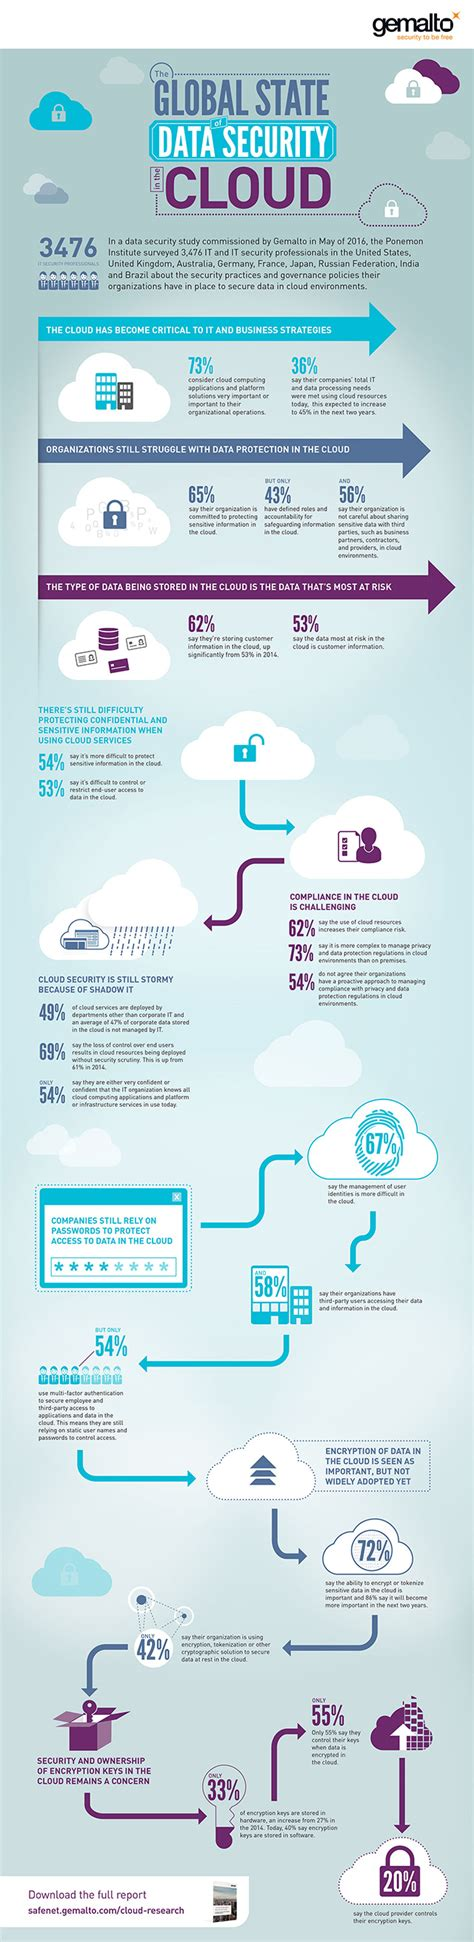 enterprise cloud security and governance efficiently set data protection and privacy principles books cloud data security trends in 2016 infographic gemalto